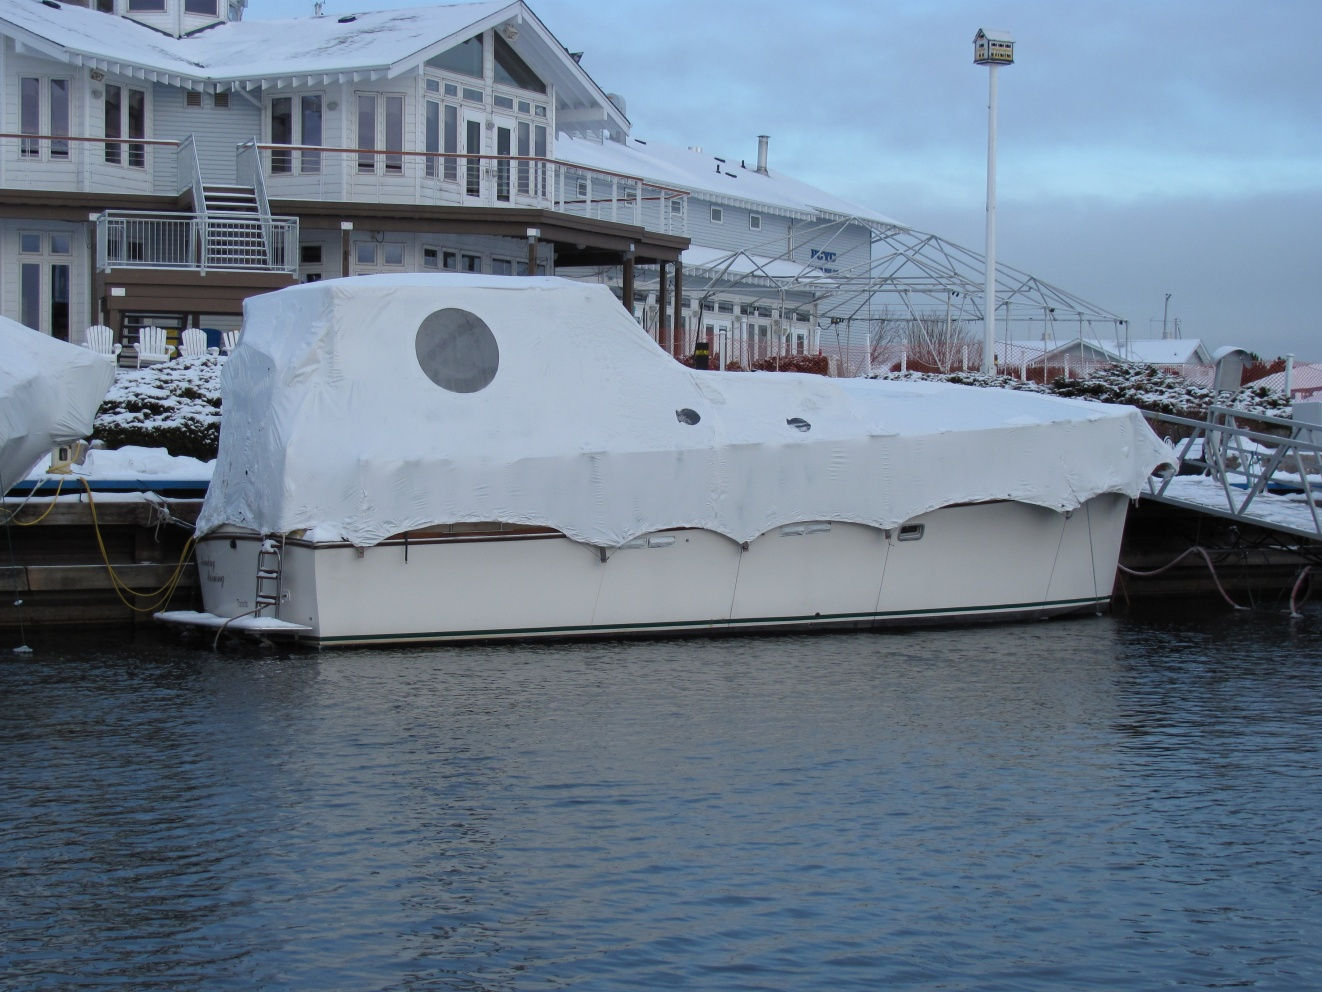 Click image for larger version  Name:Snow boat.jpg Views:161 Size:412.7 KB ID:50134